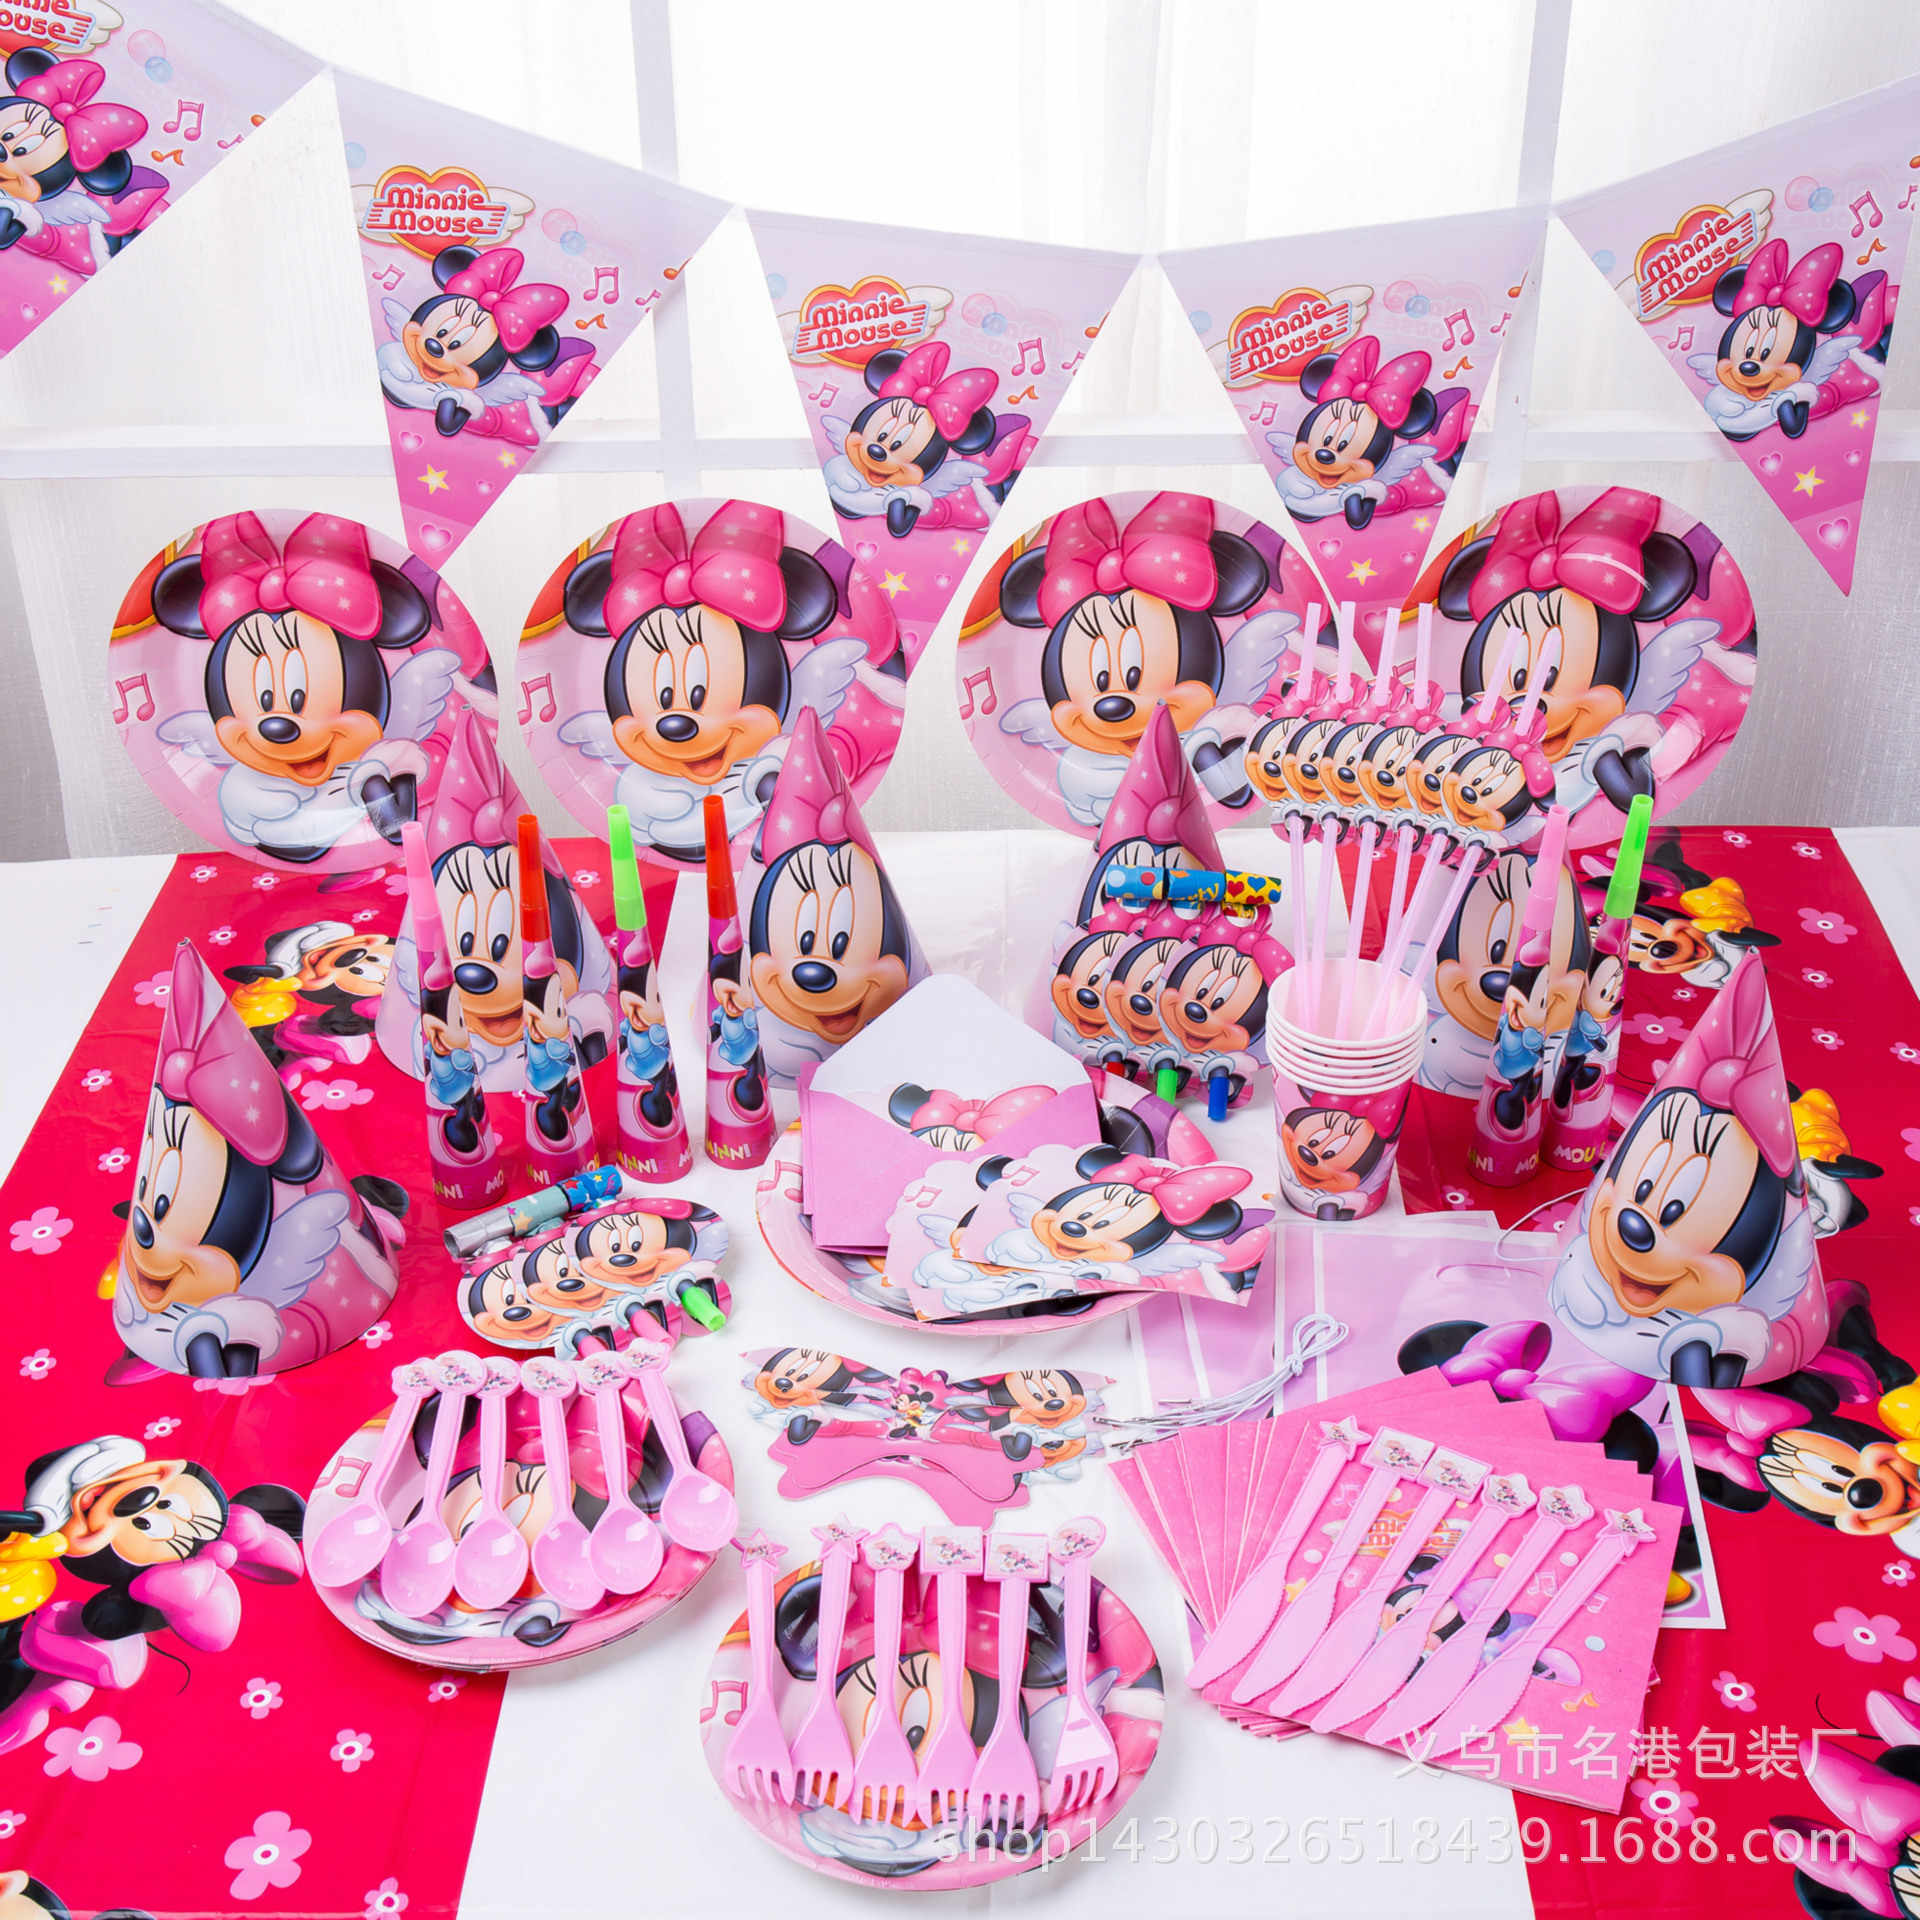 155Pcs Rode Minnie Mouse Disney Baby Shower Jongens Verjaardag Decoratie Wedding Event Feestartikelen Diverse Servies Sets Voor Kids